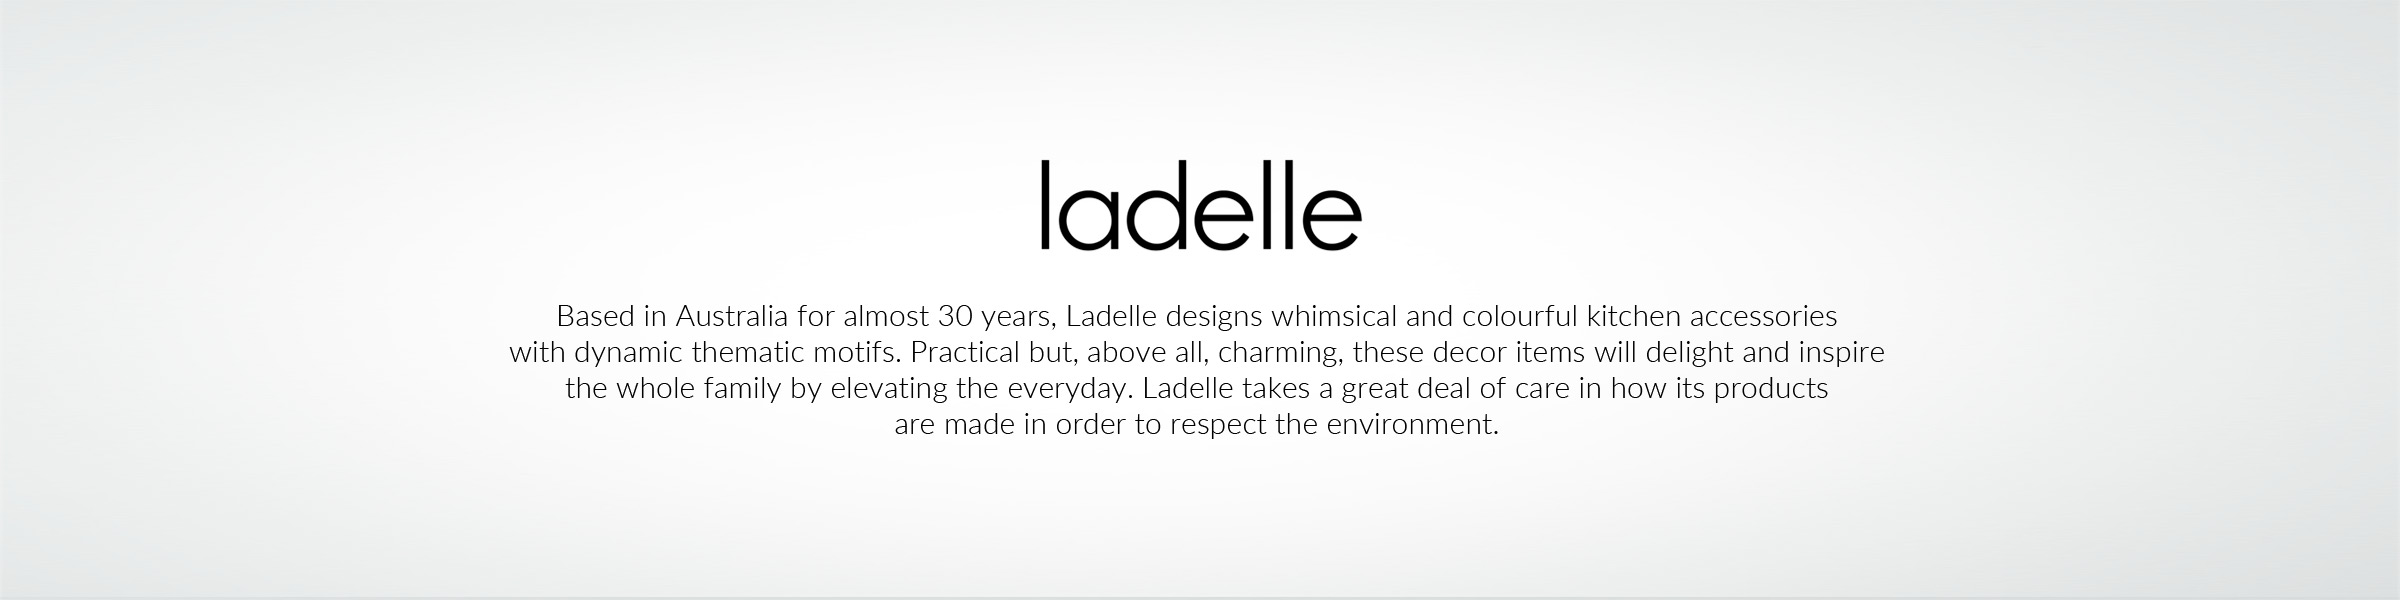 031059 Ladelle